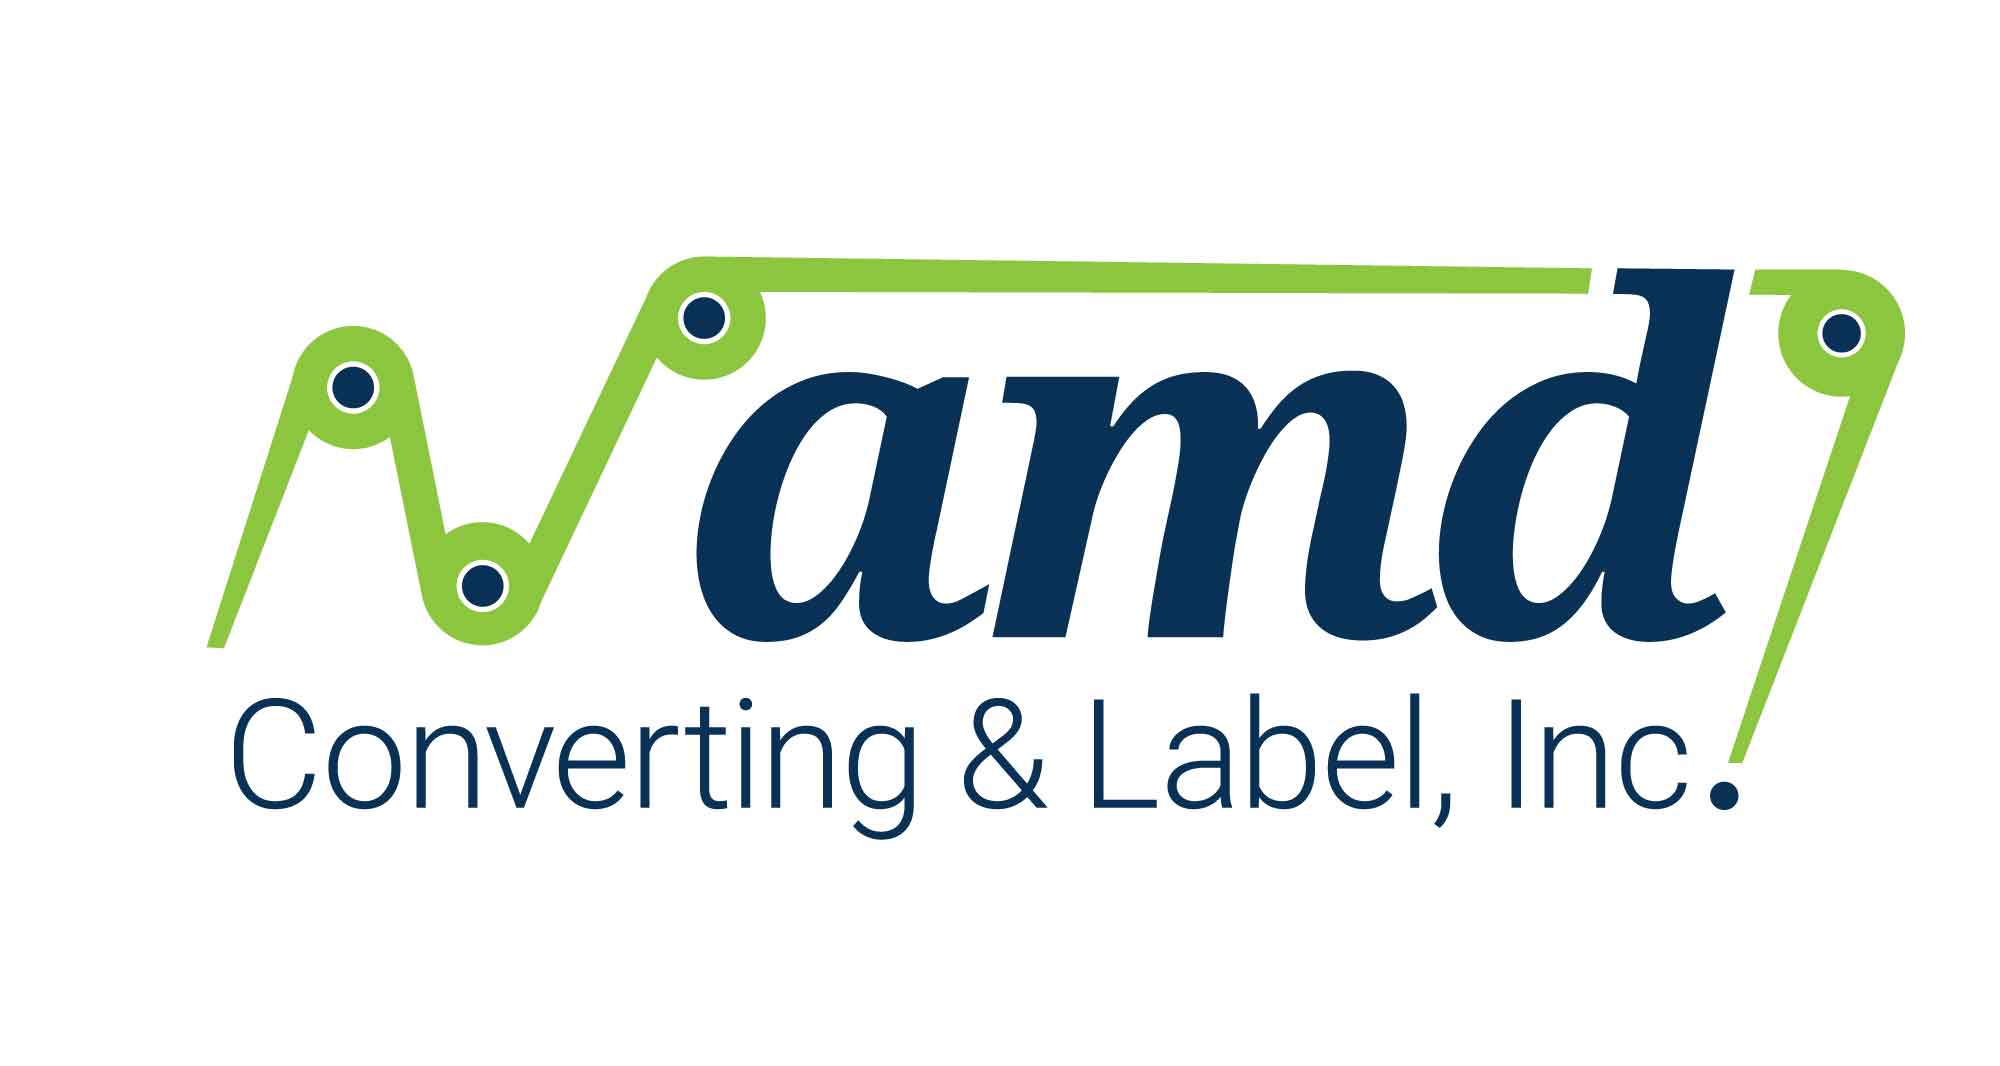 AMD Converting & Label, llc